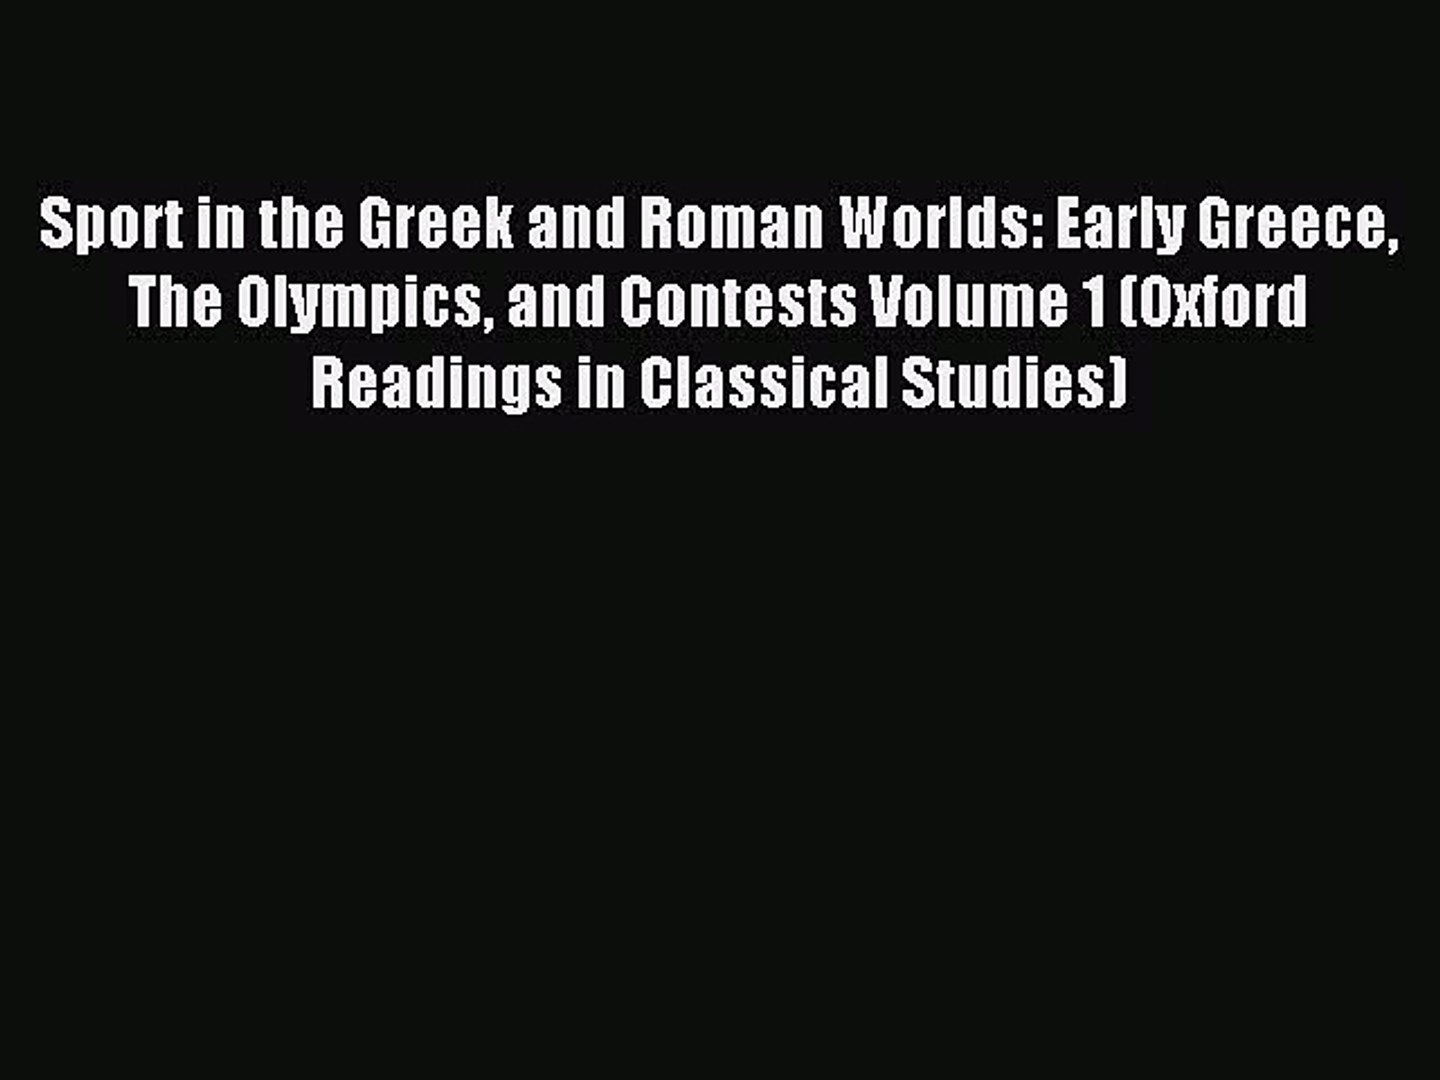 Read Sport in the Greek and Roman Worlds: Early Greece The Olympics and Contests Volume 1 (Oxford